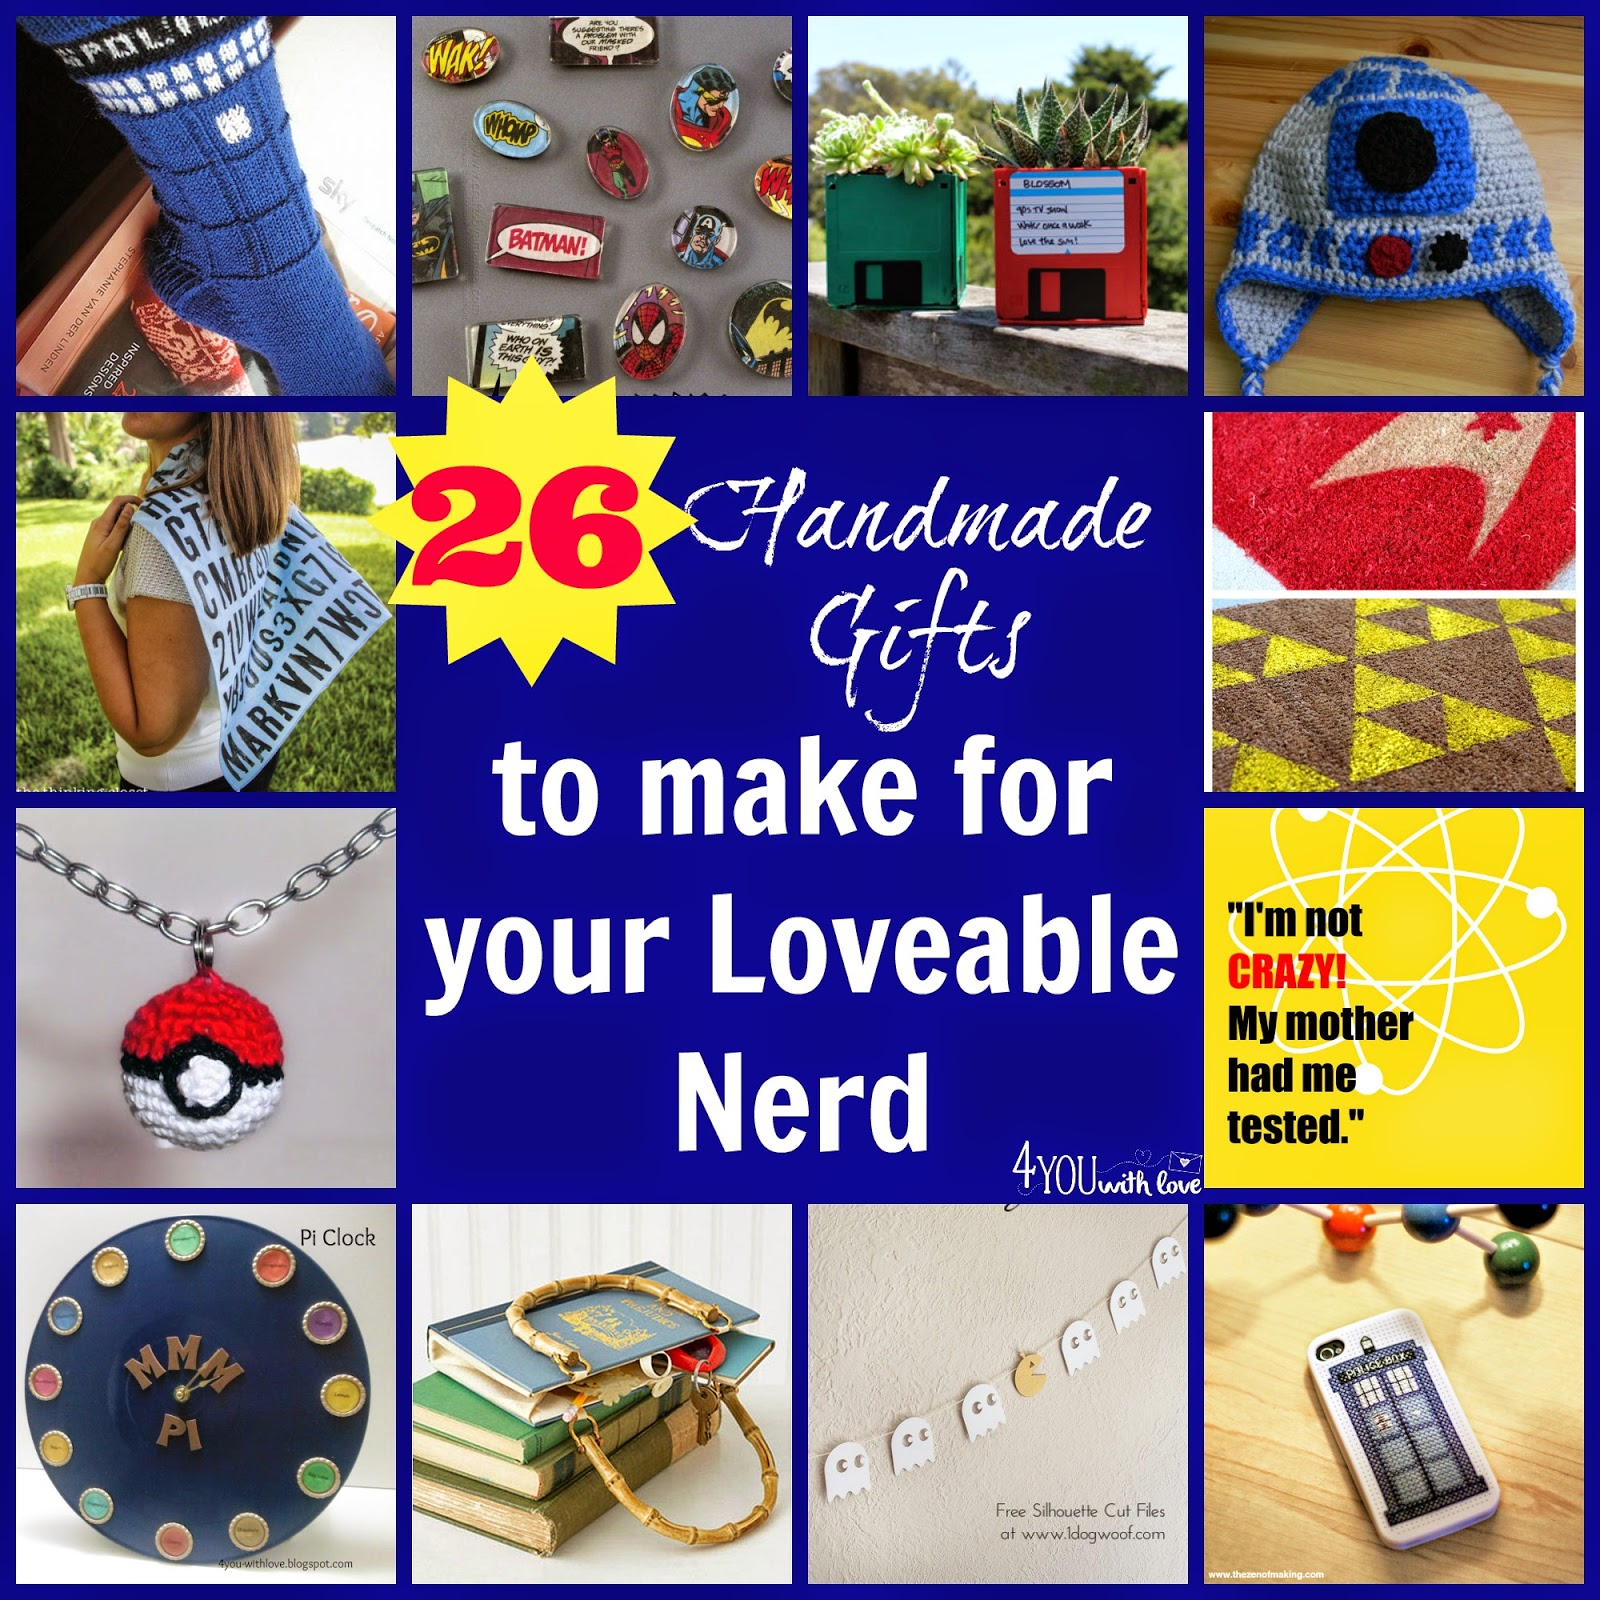 Hat Hanger Ideas 26 Handmade Gifts For The Loveable Nerds In Your Life 4